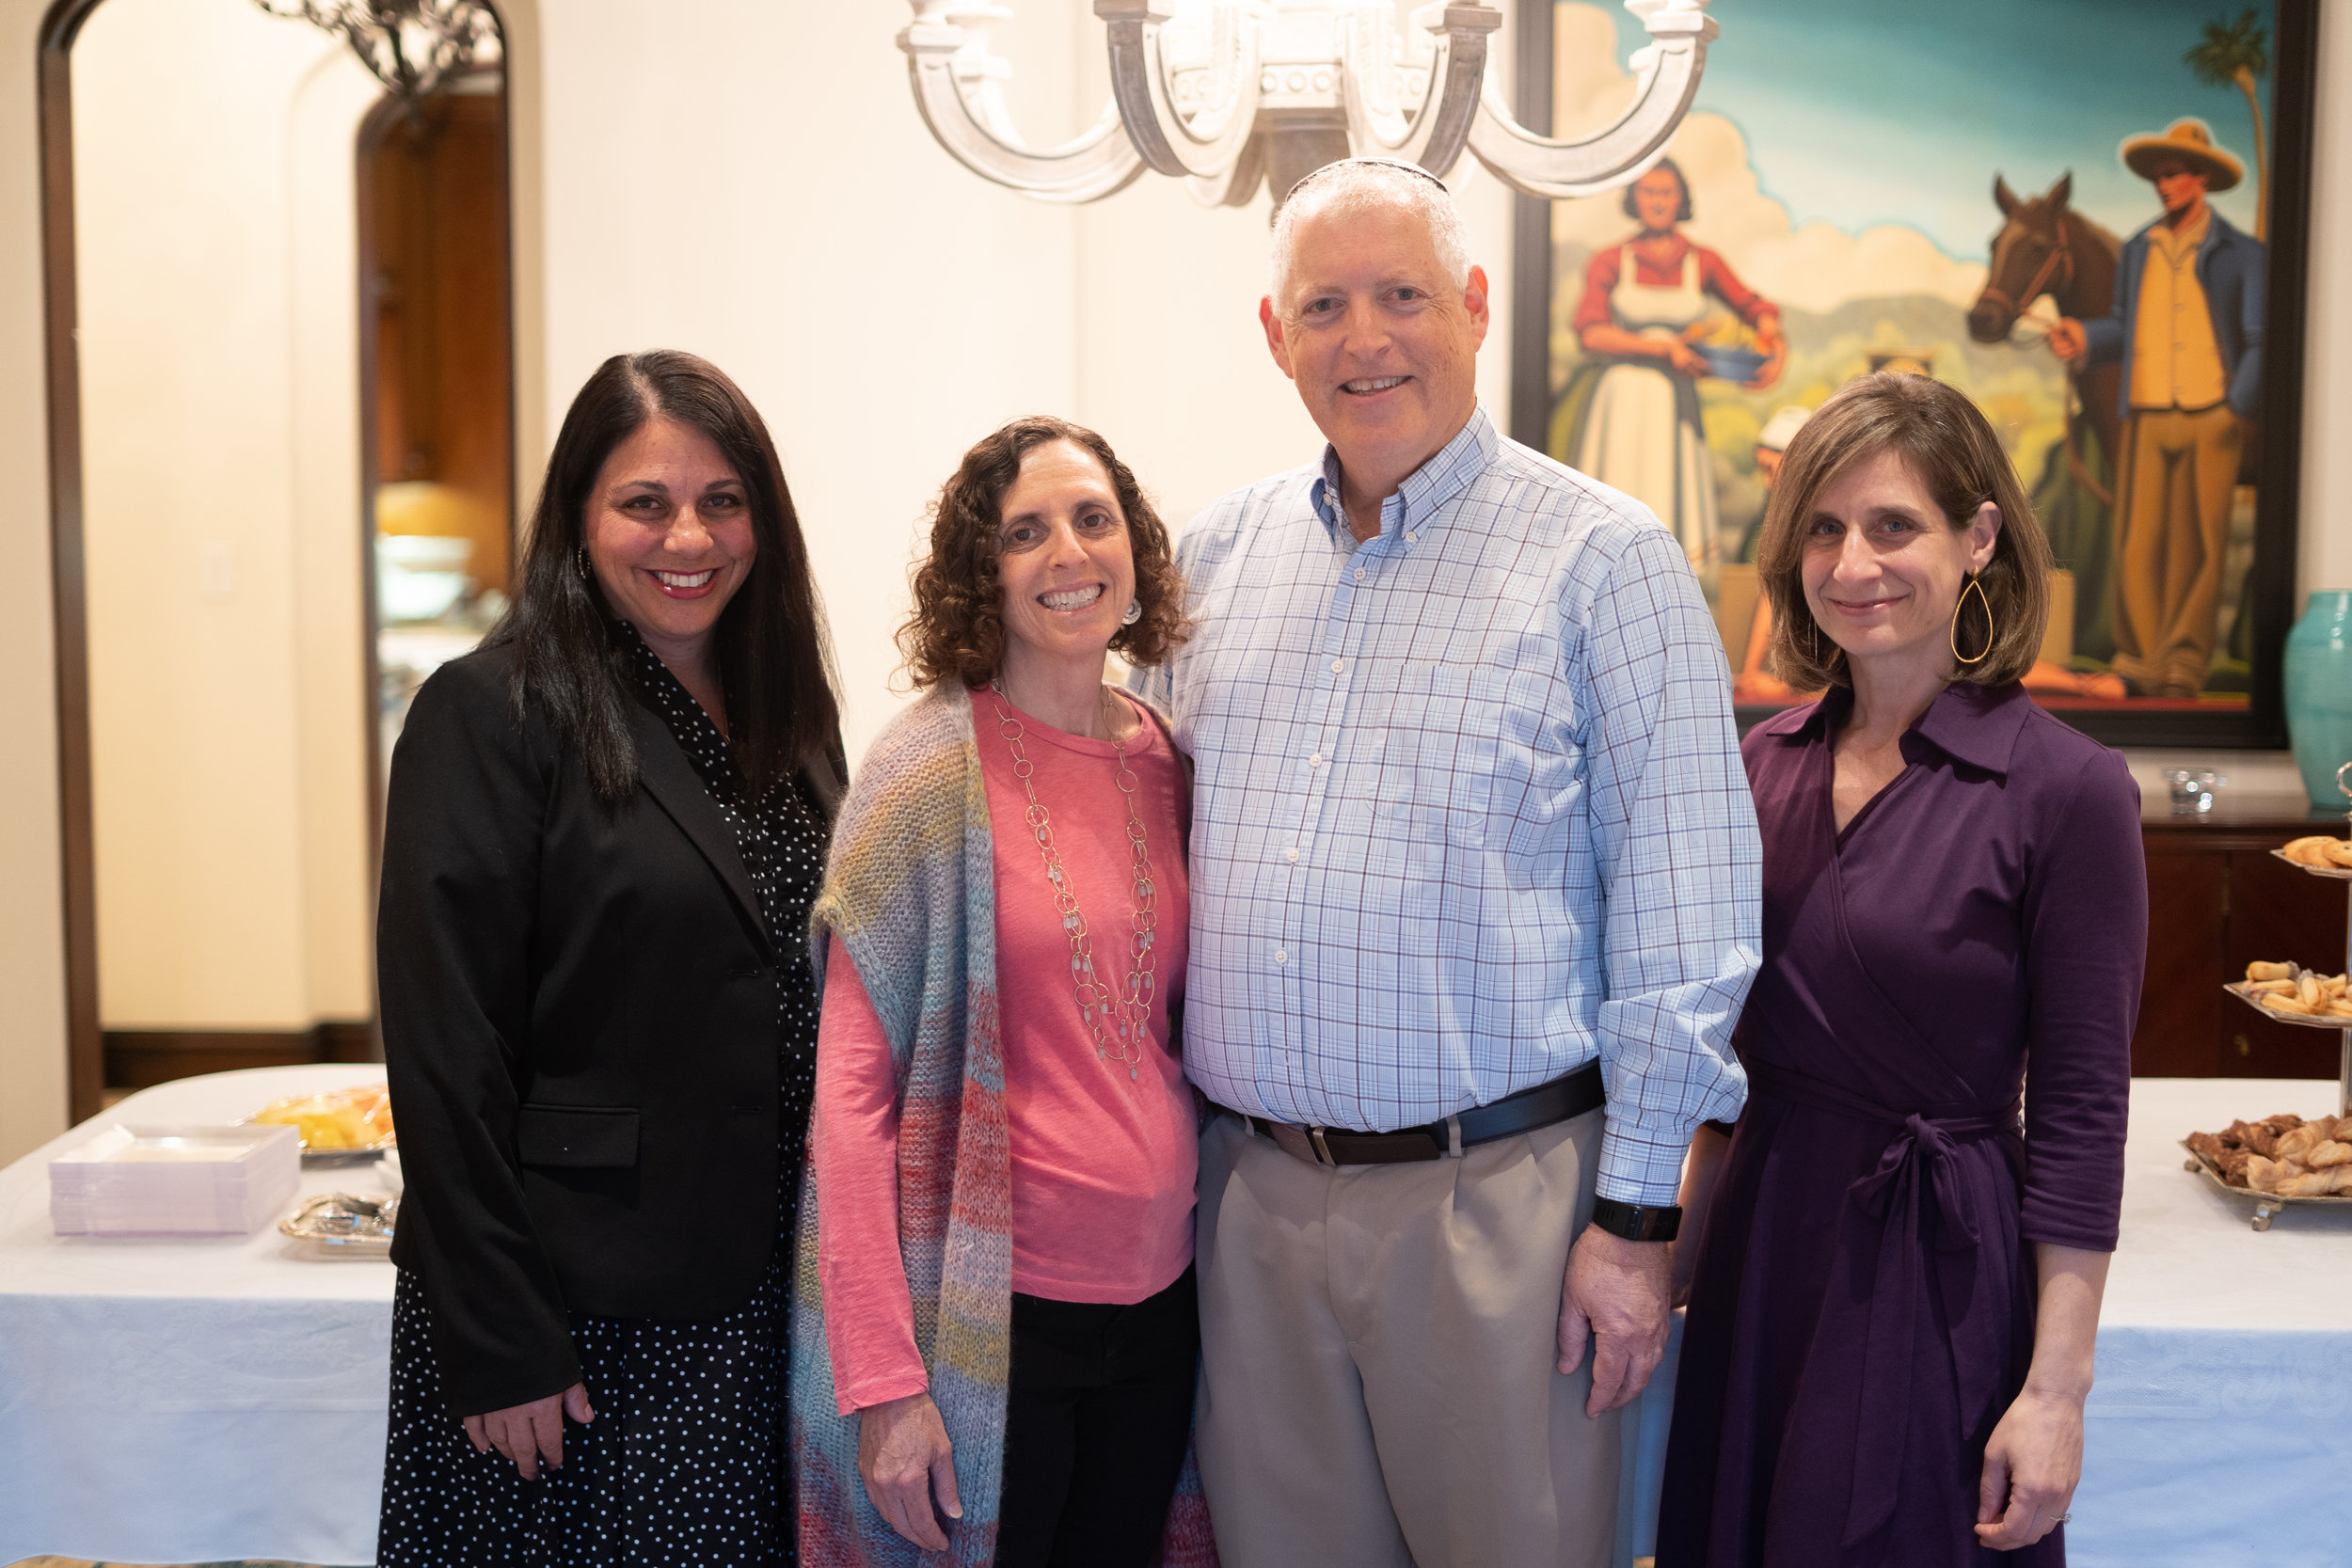 (left to right) Tammy Keces, Head of School for Irvine Hebrew Day School, Beth Elster, Andy Elster, Co-founder & CFO of Irvine Hebrew Day School and Karin Hepner , Co-founder & President of Irvine Hebrew Day School. *Photo Credit: Joel Austell